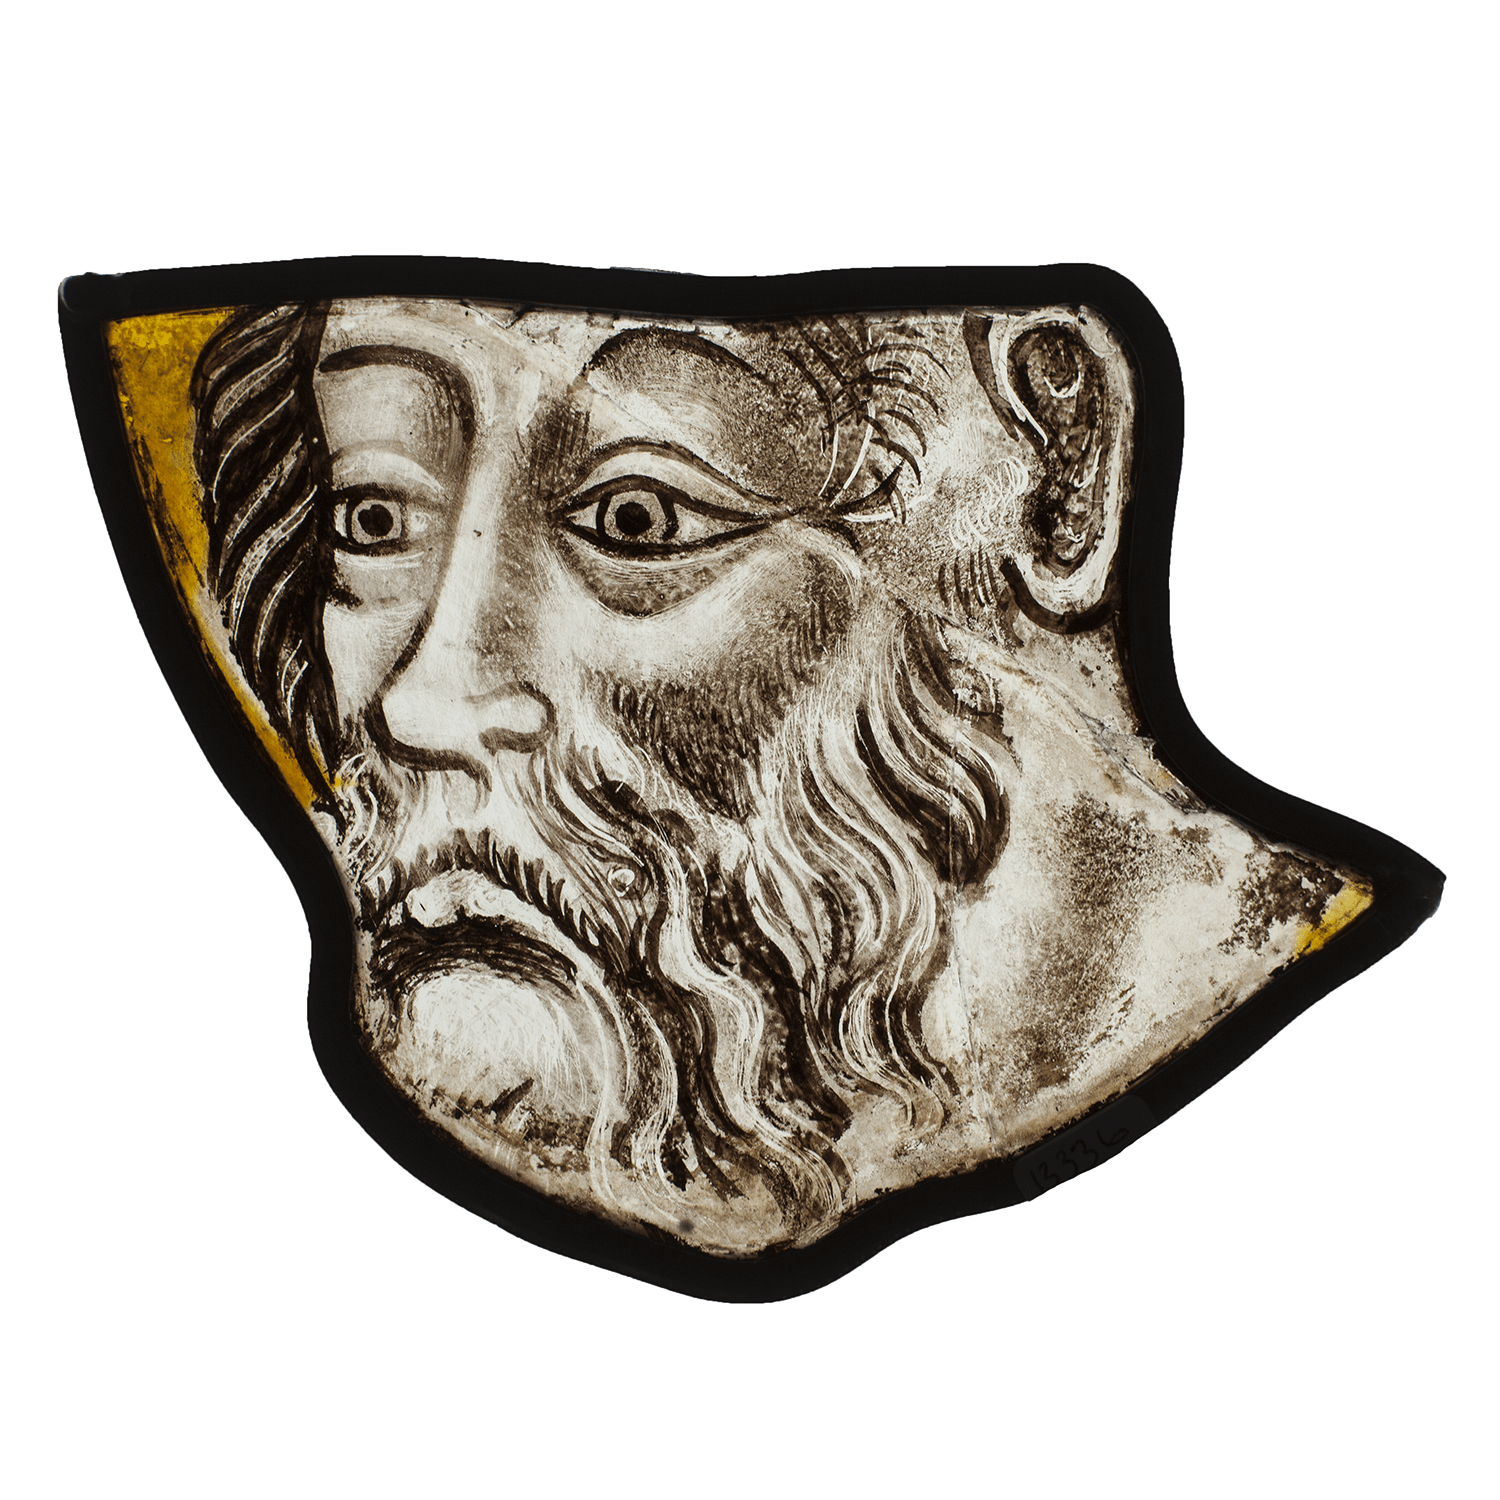 "<span class=""title""><em>The head of a bearded saint</em>, c. 1430s</span>"